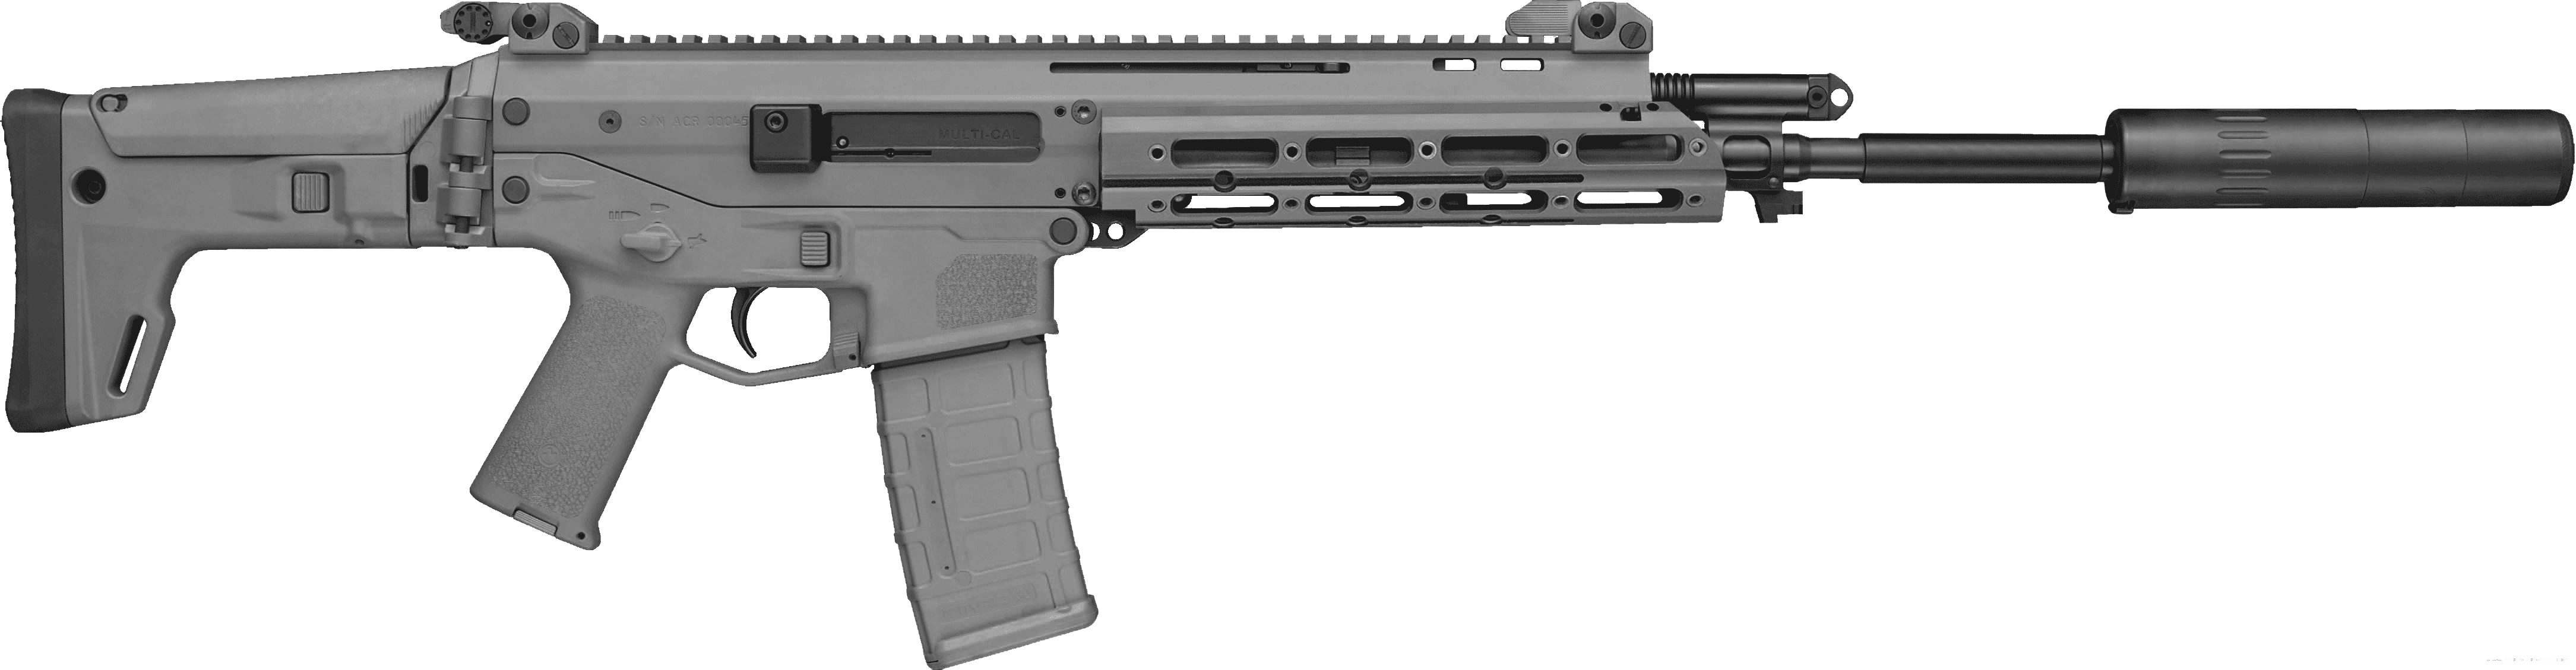 M16 full stock png. Assault rifle thirty one